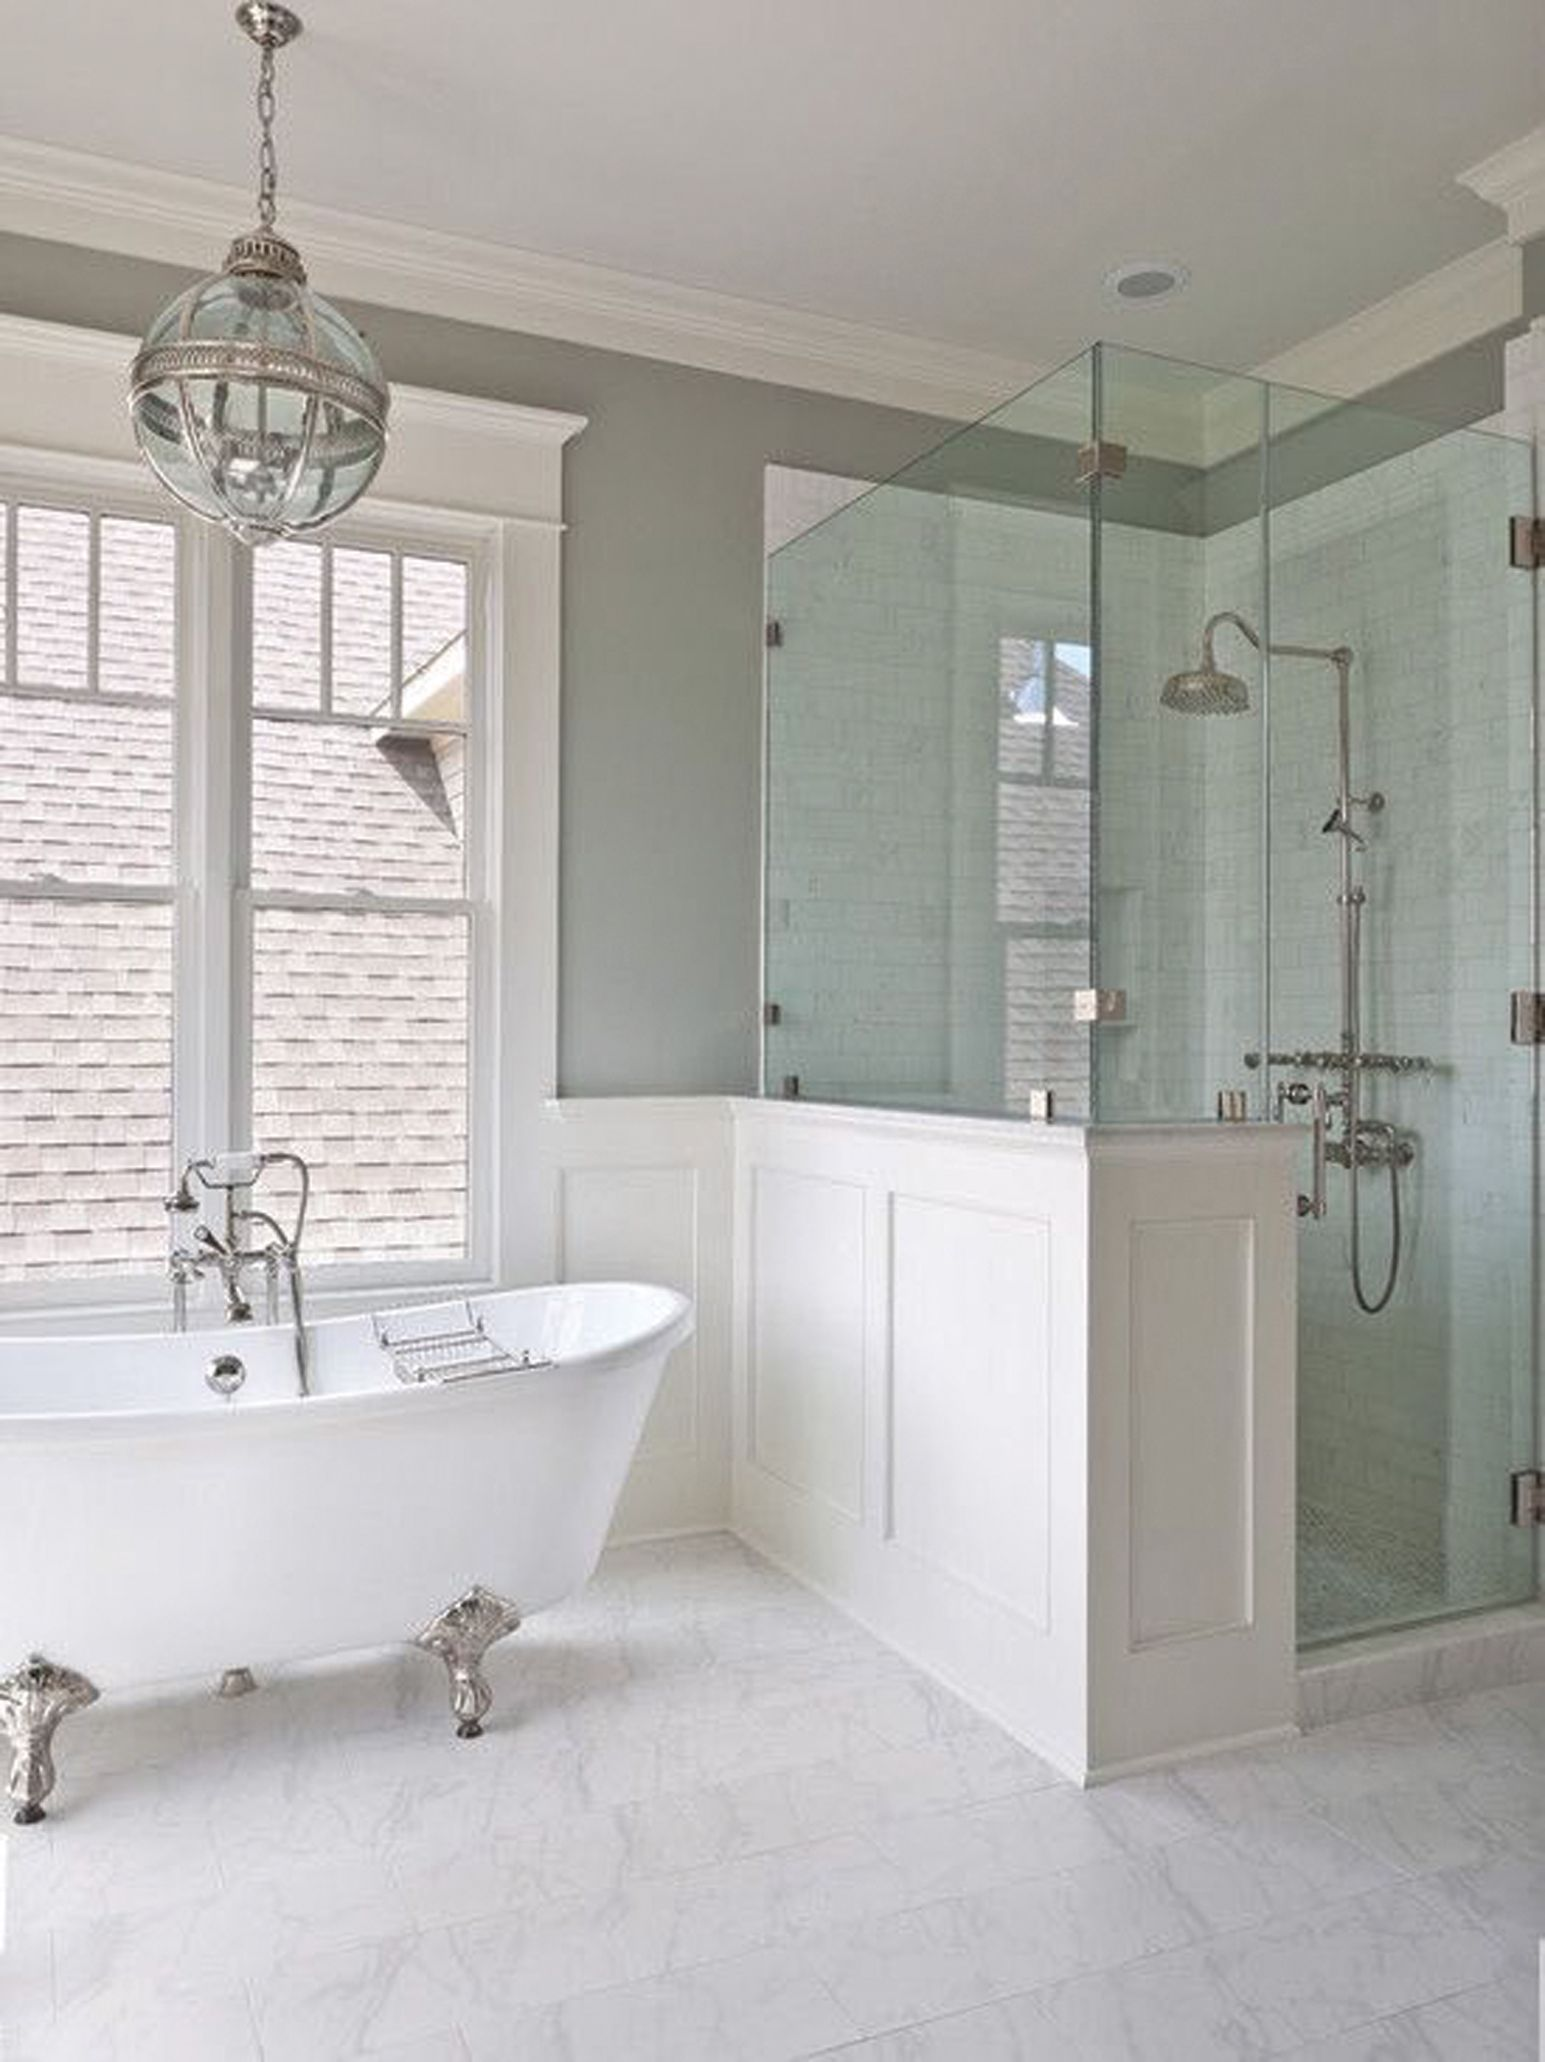 5 Important Things To Consider Before A Bathroom Renovation